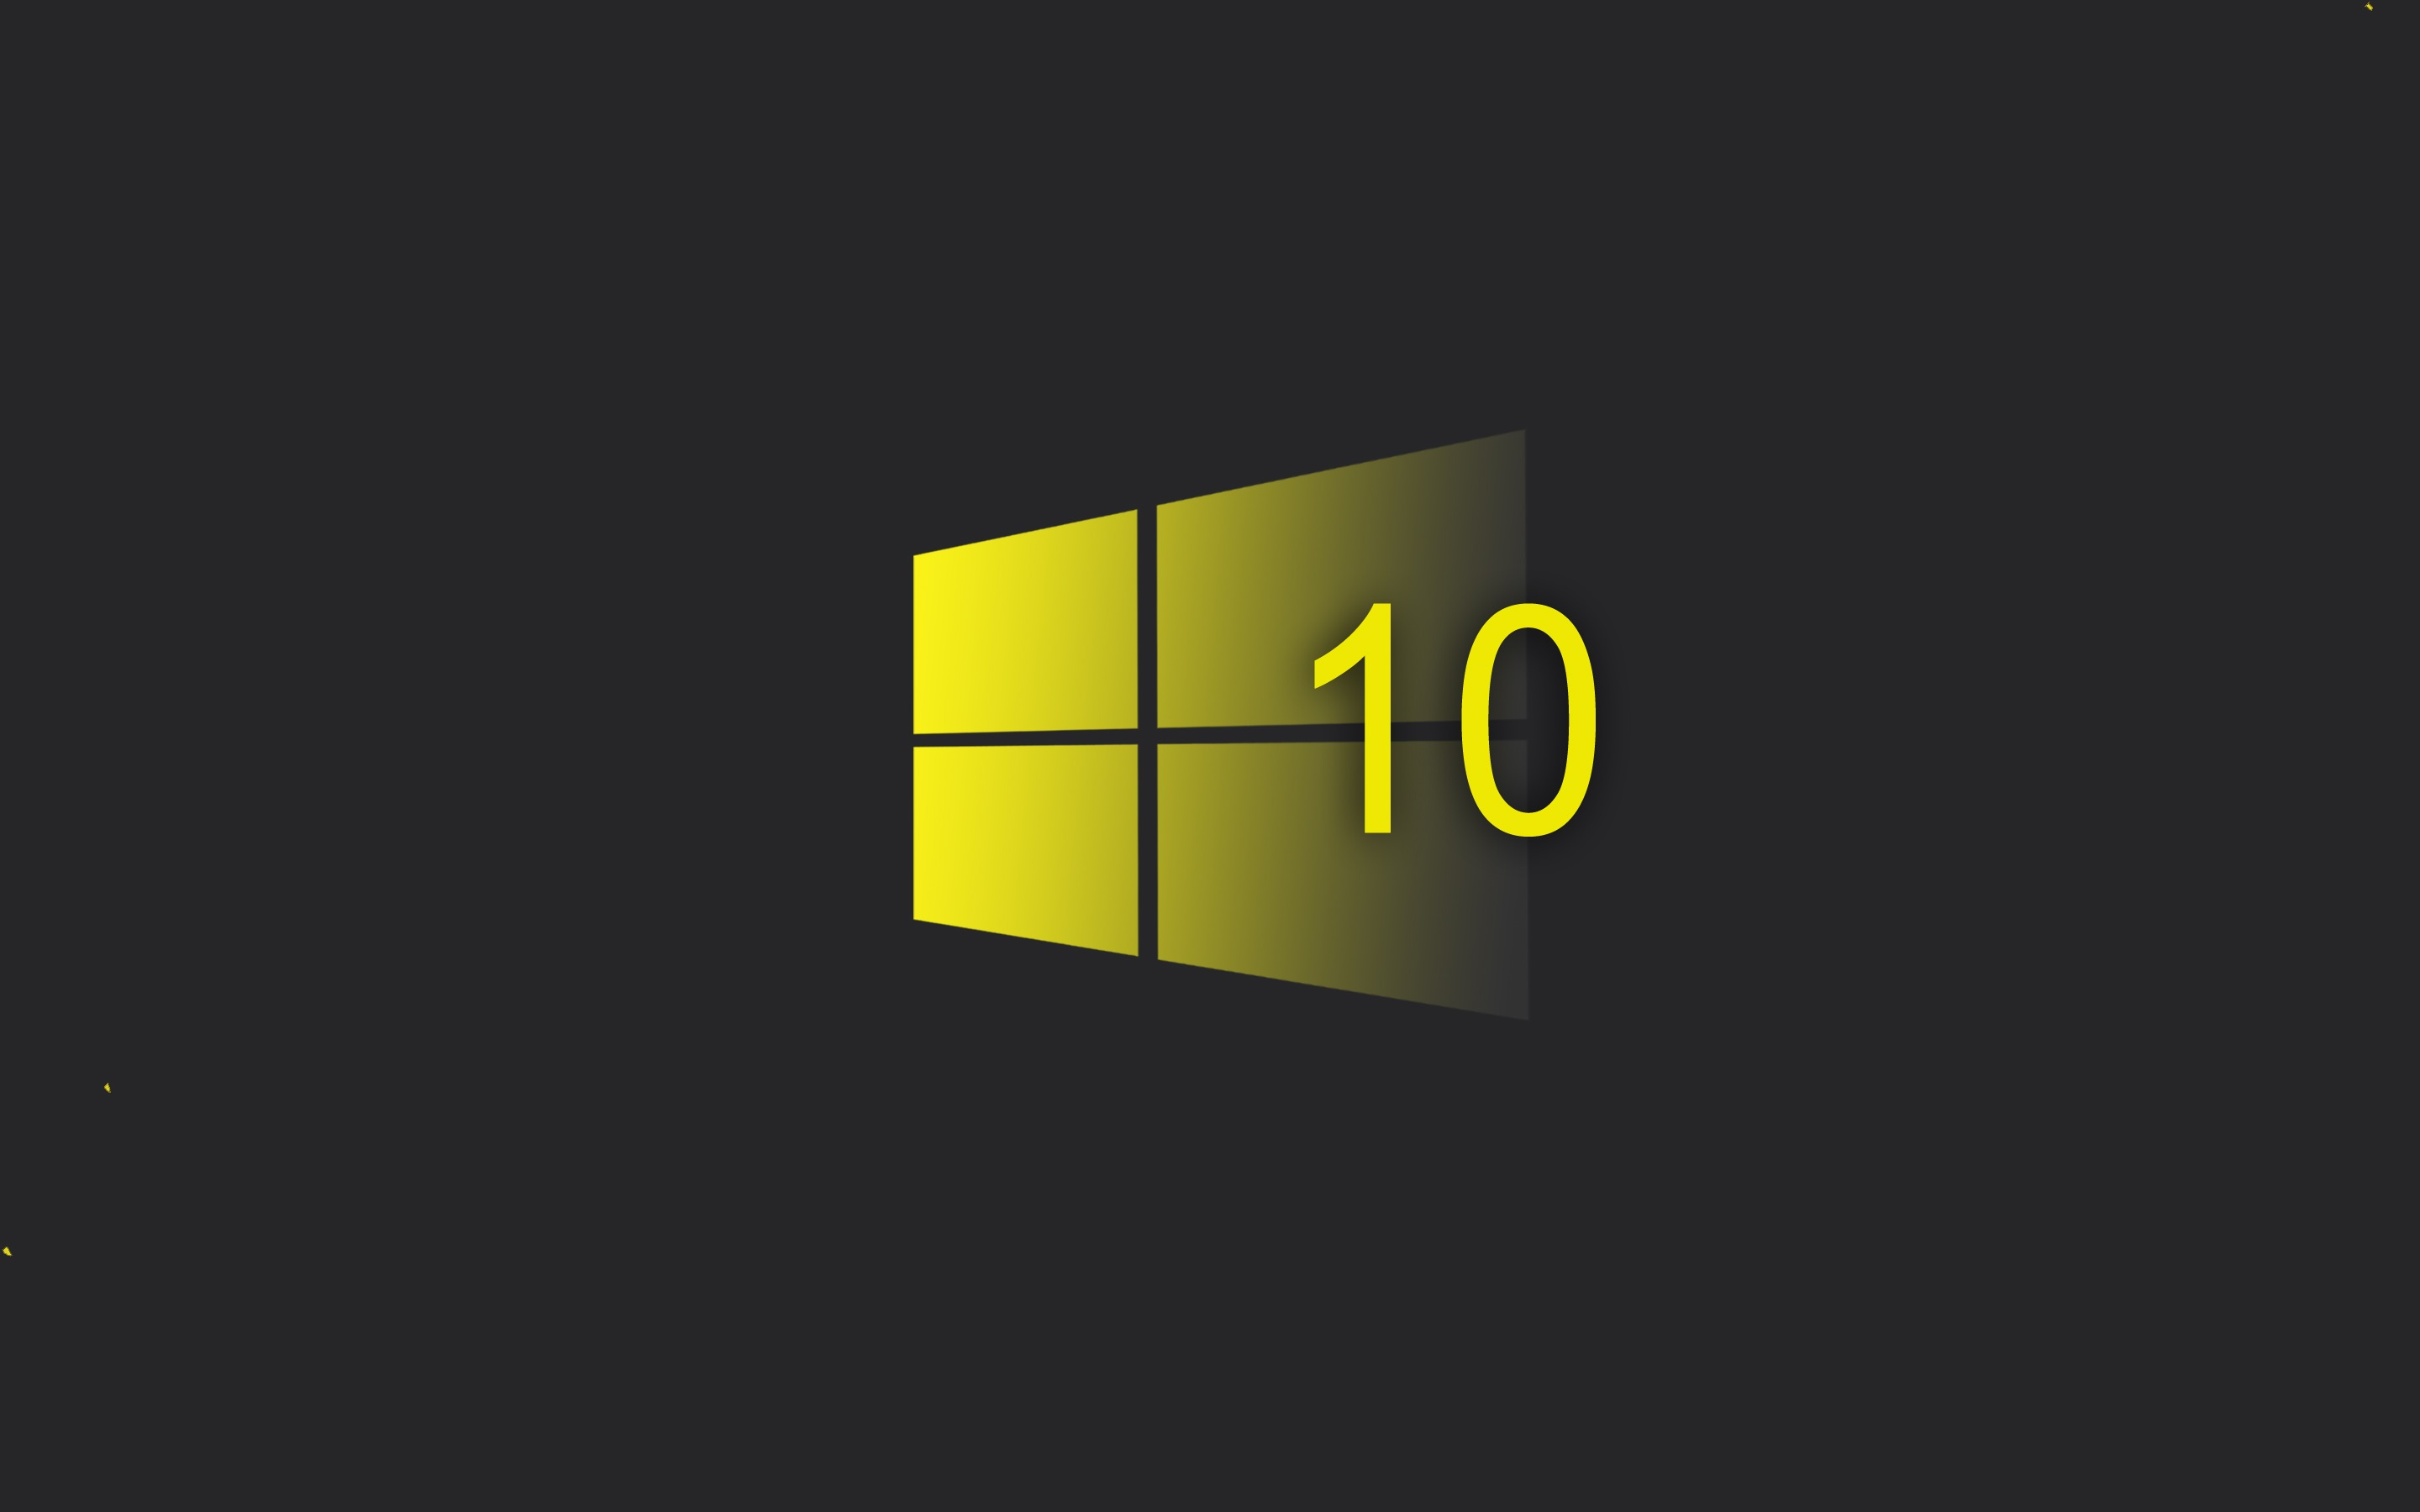 Wallpaper Windows 10 System Yellow Style Logo Black Background